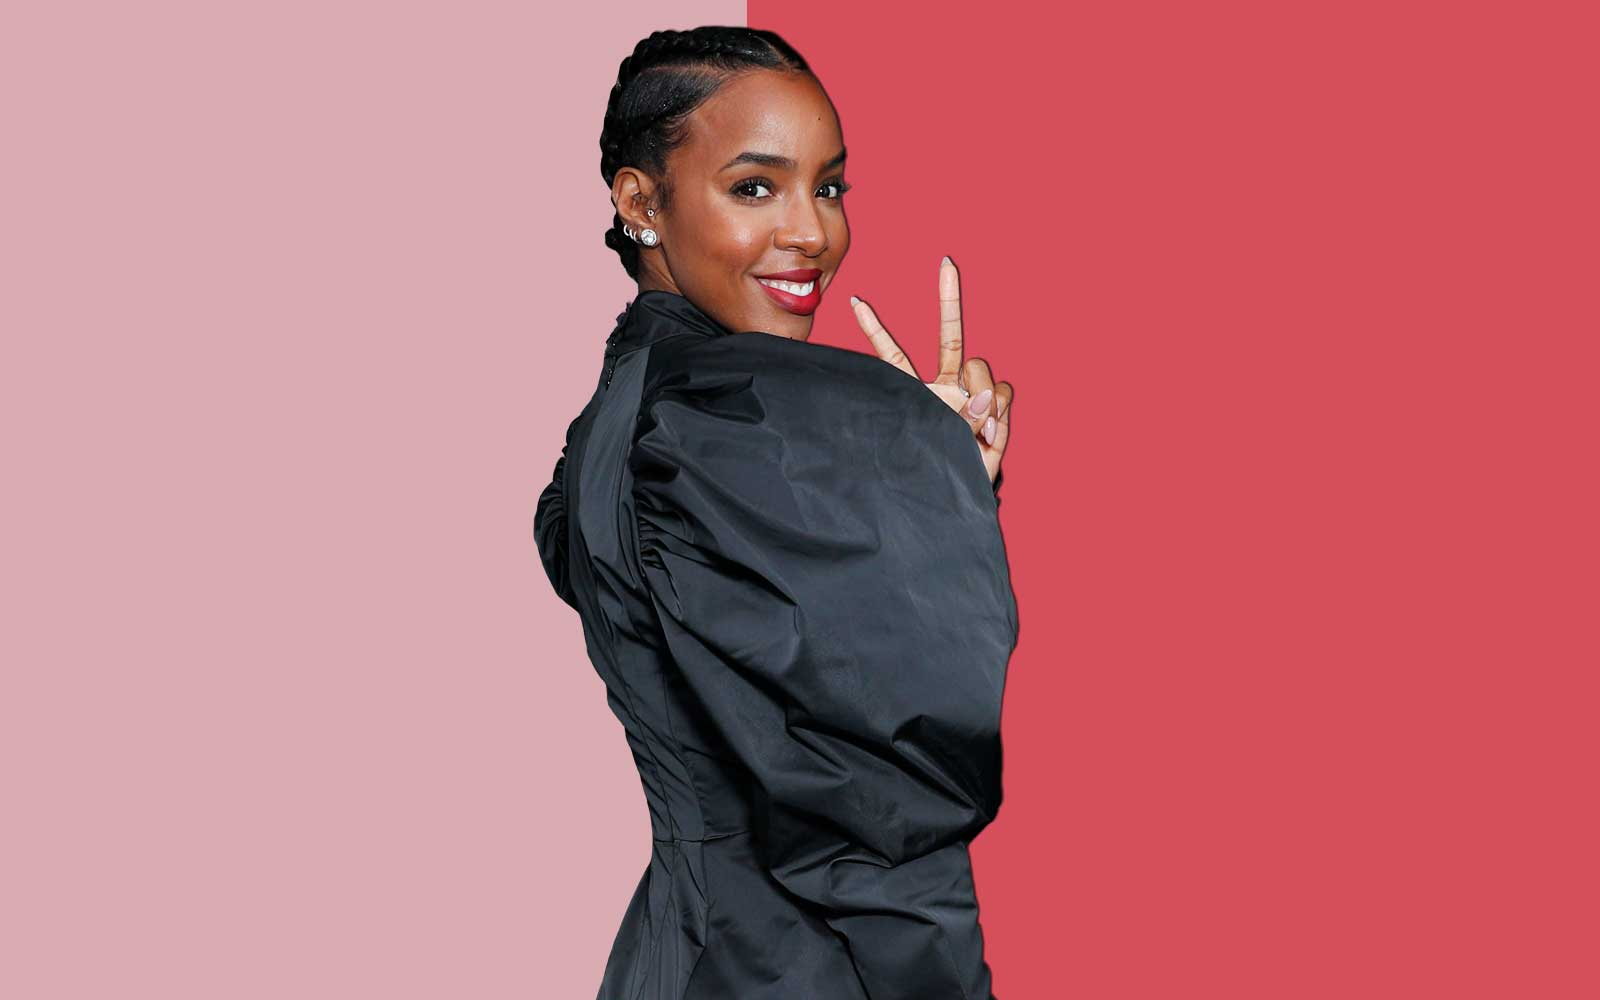 How to Do Toronto in 48 Hours Like Kelly Rowland